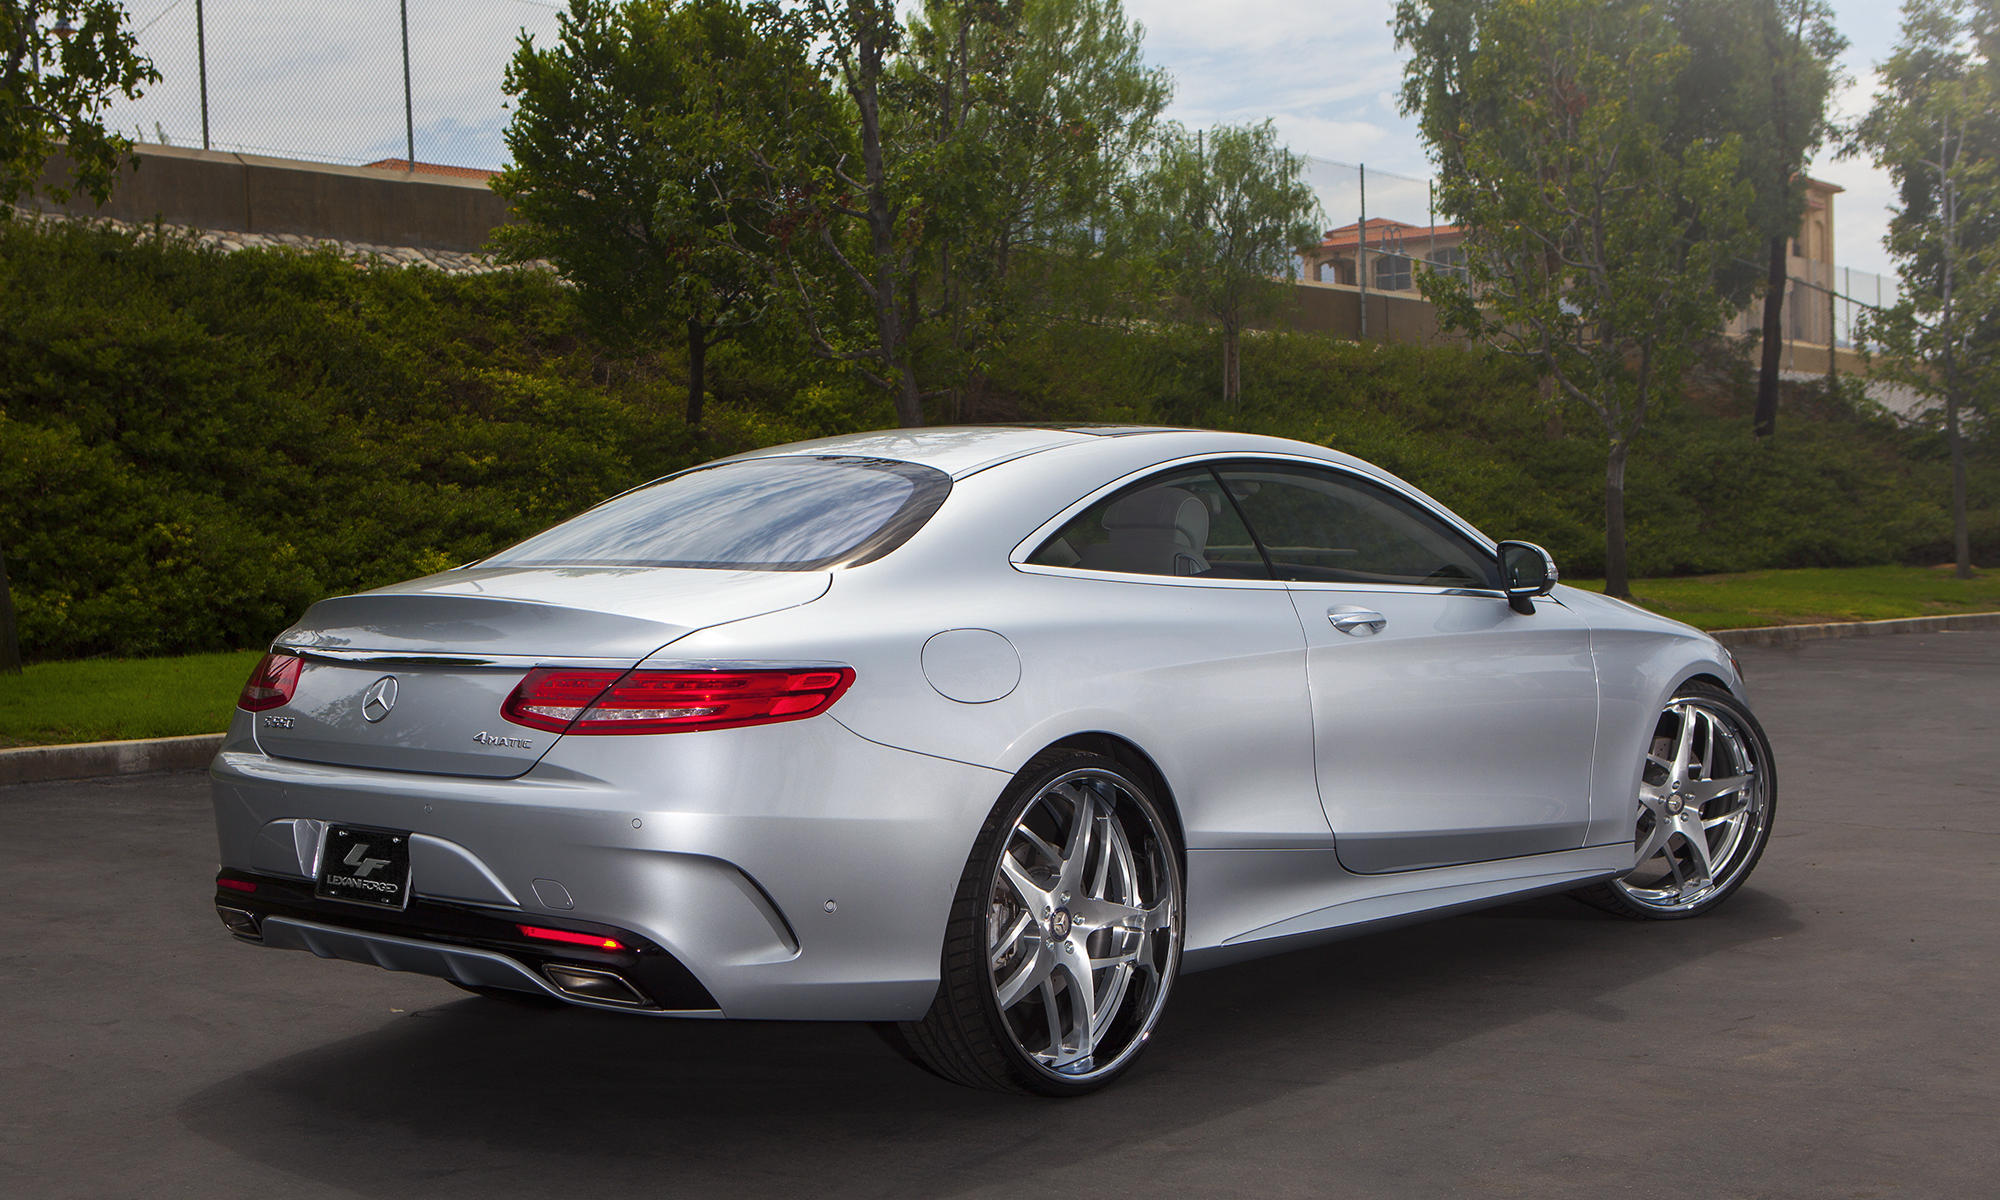 2016 Mercedes S550 Coupe on LF-746